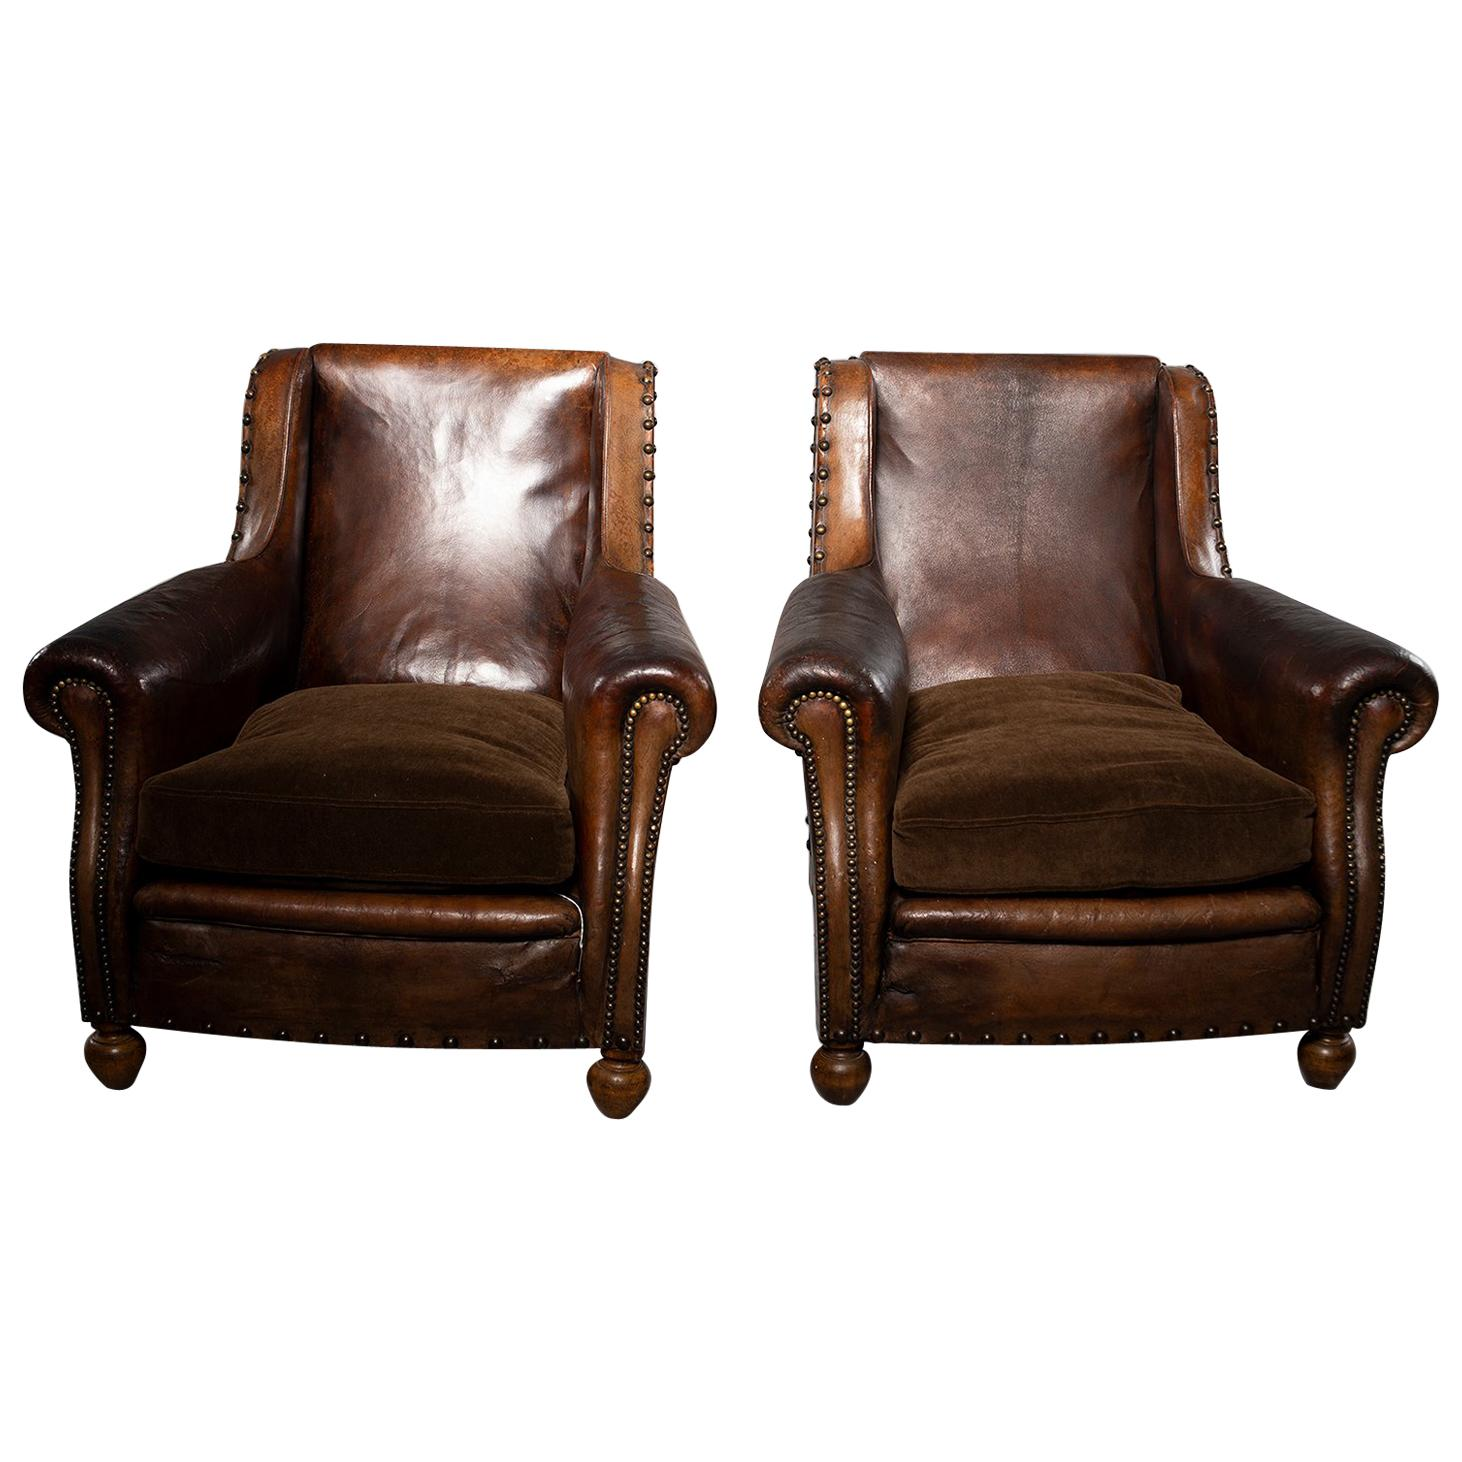 Art deco lounge chairs 350 for sale at 1stdibs